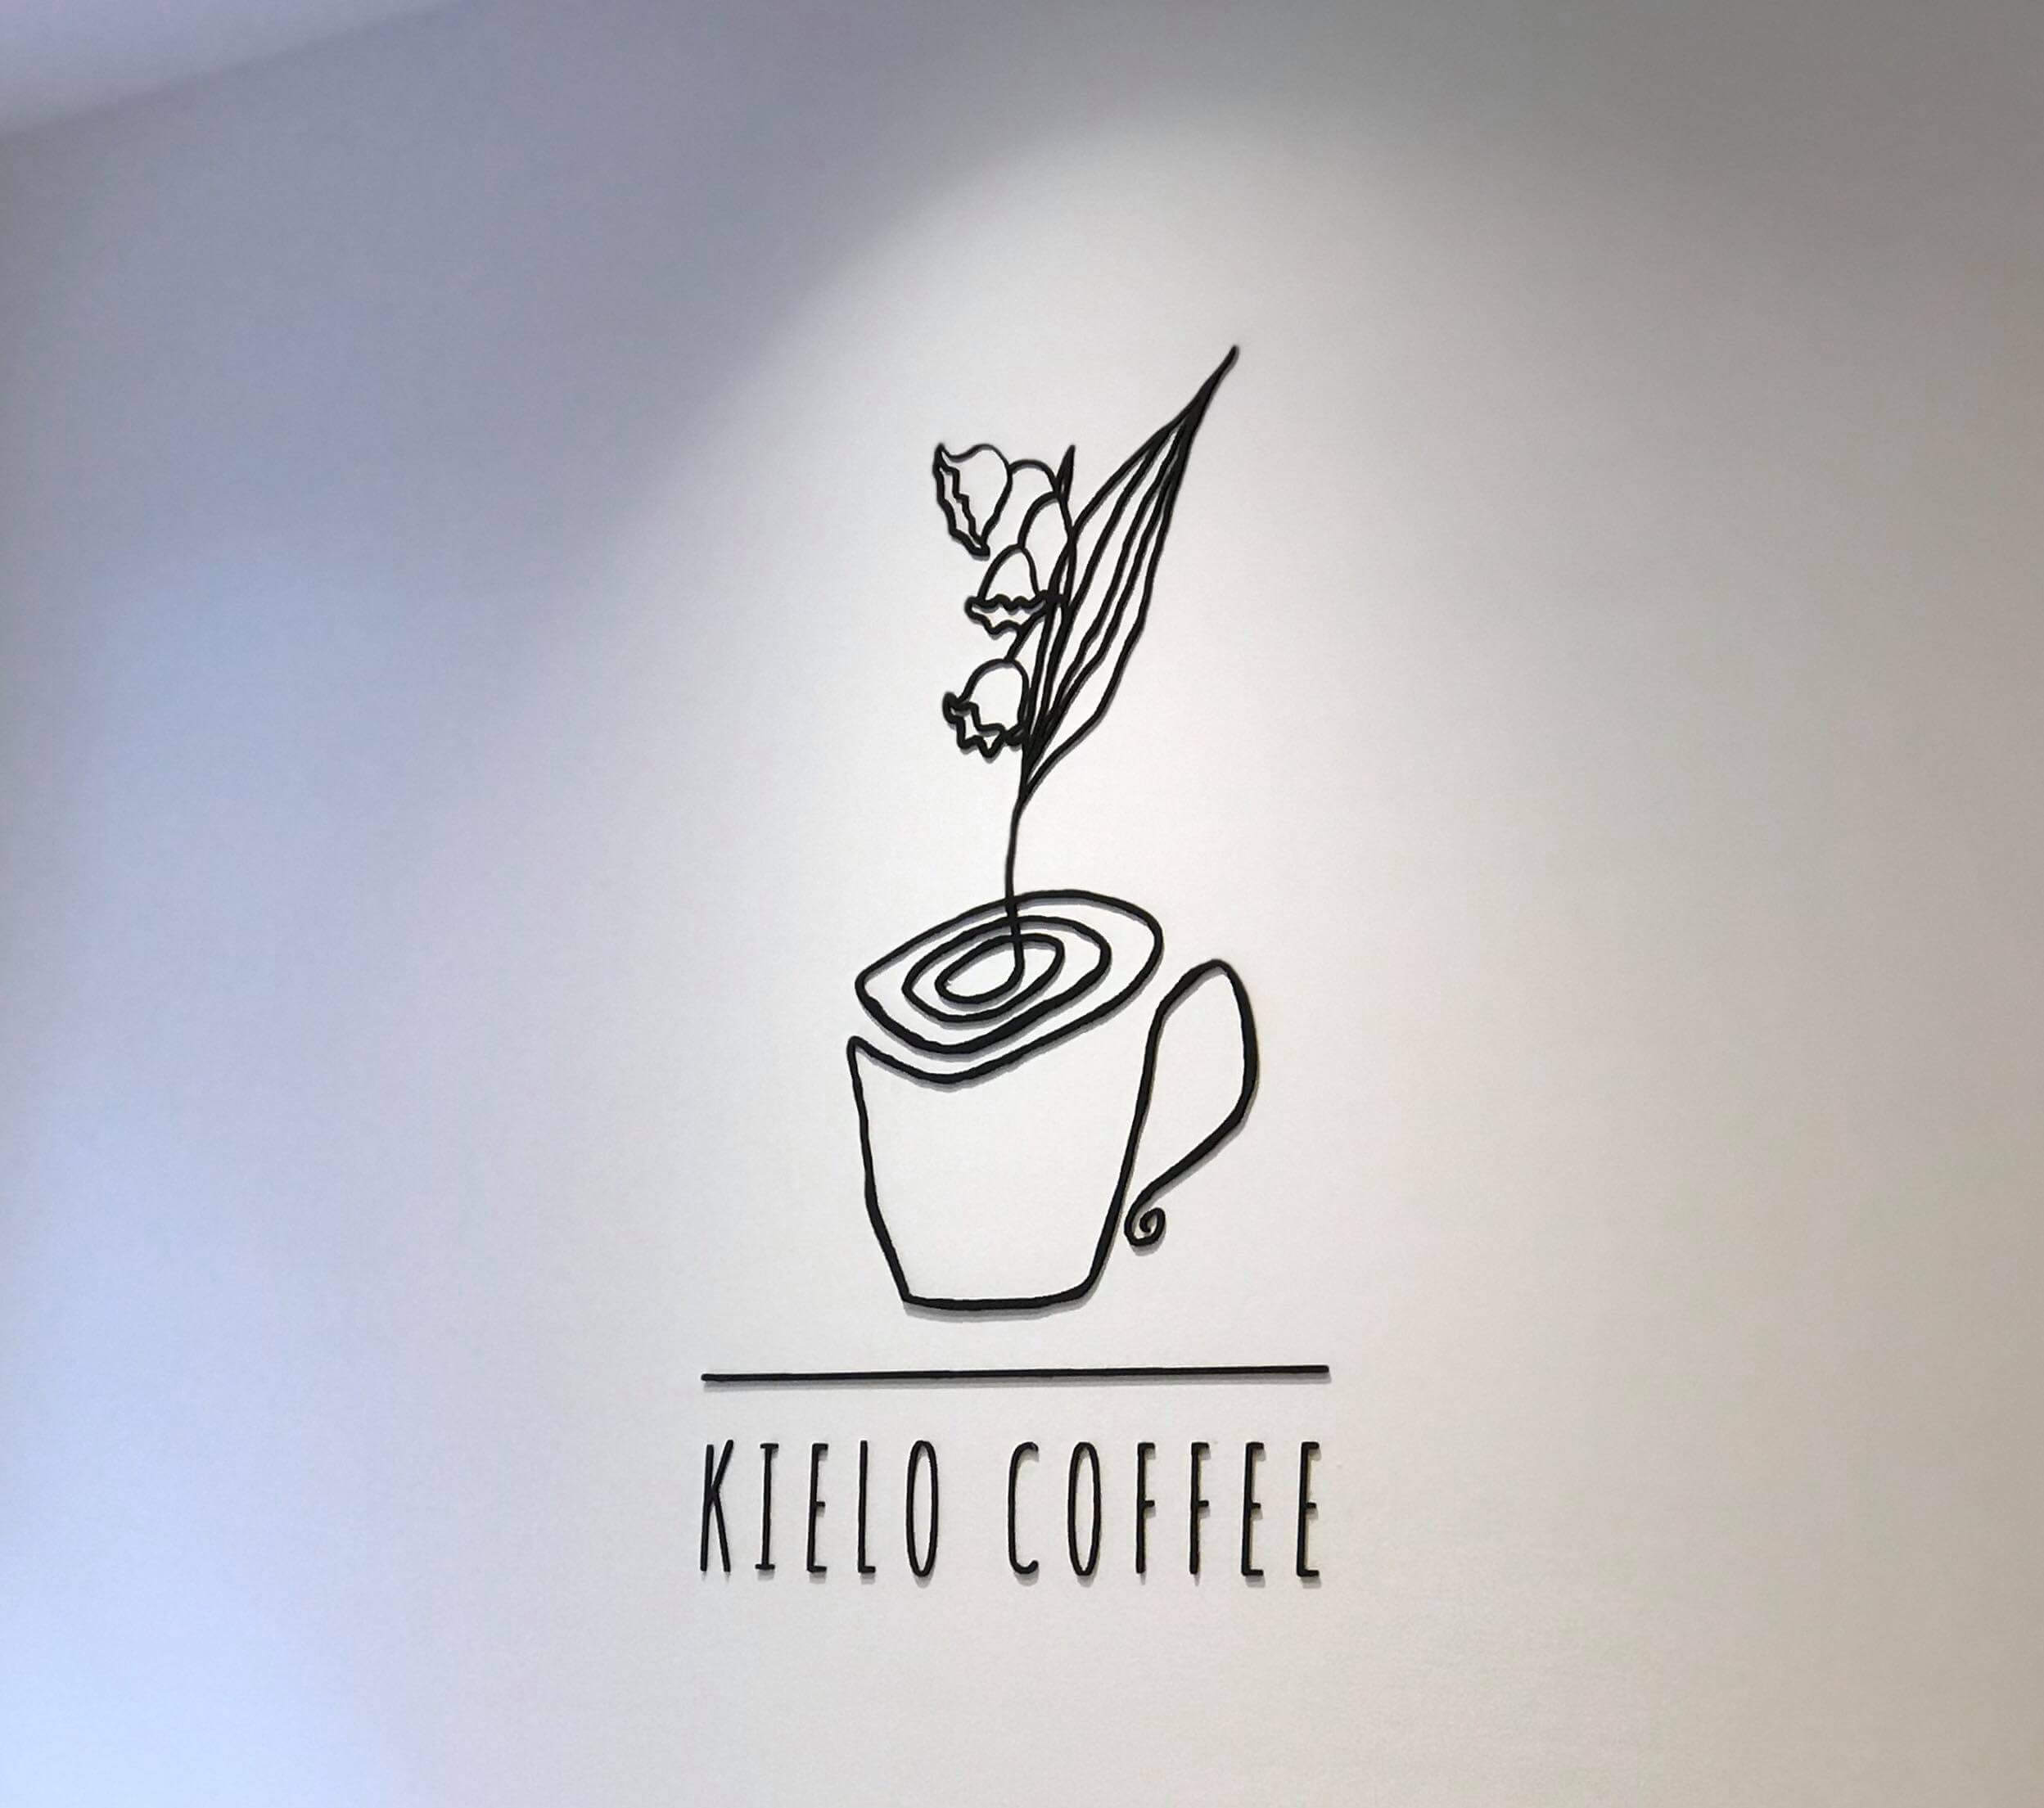 KIELO COFFEE ロゴ